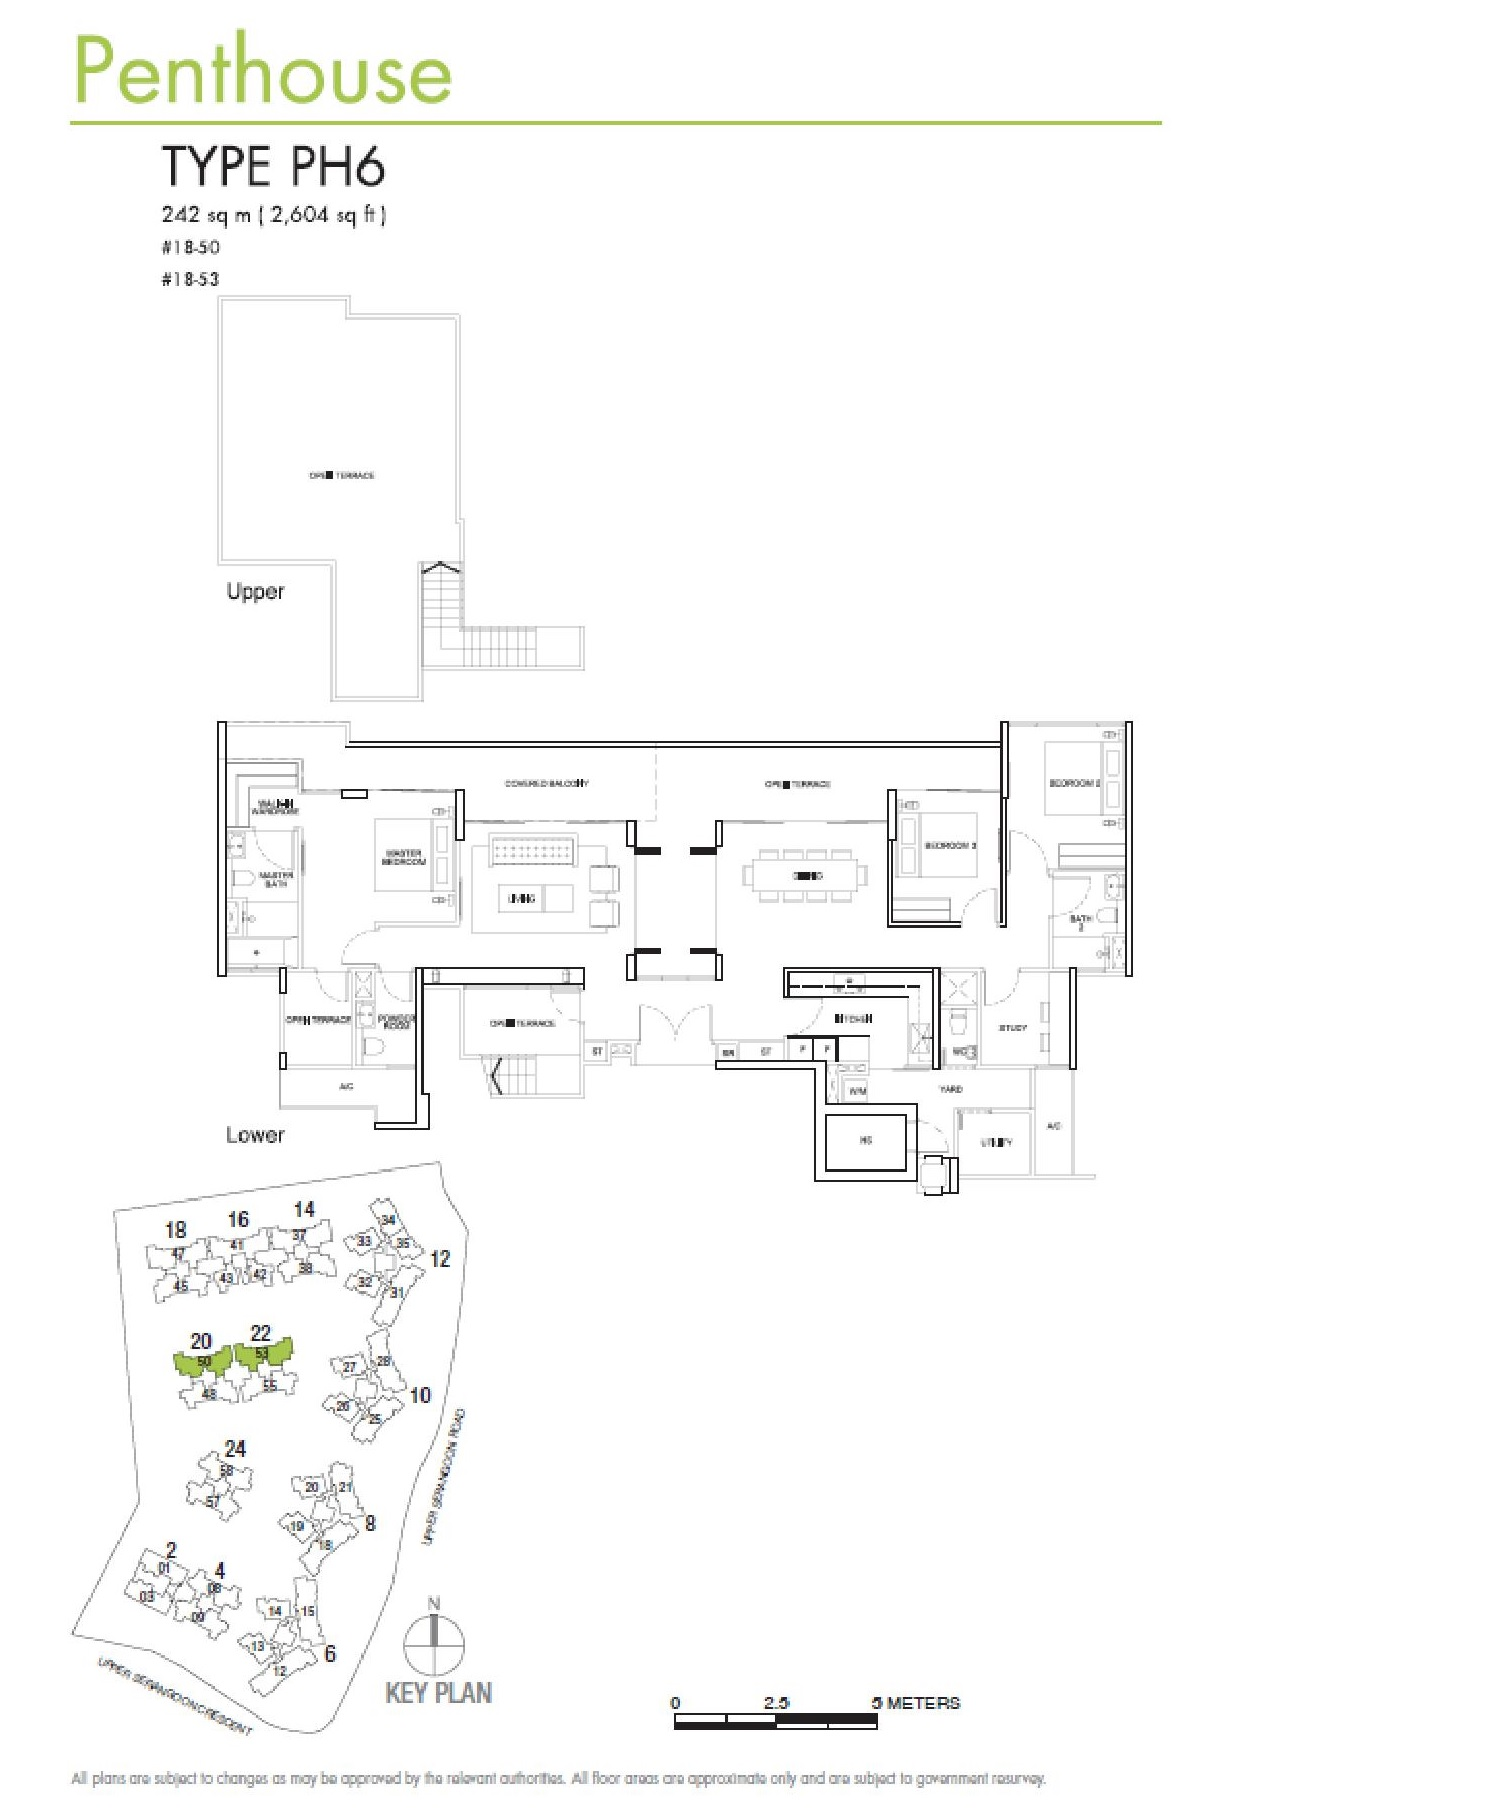 RiverSails 3 Bedroom + Study Penthouse Type PH6 Floor Plans